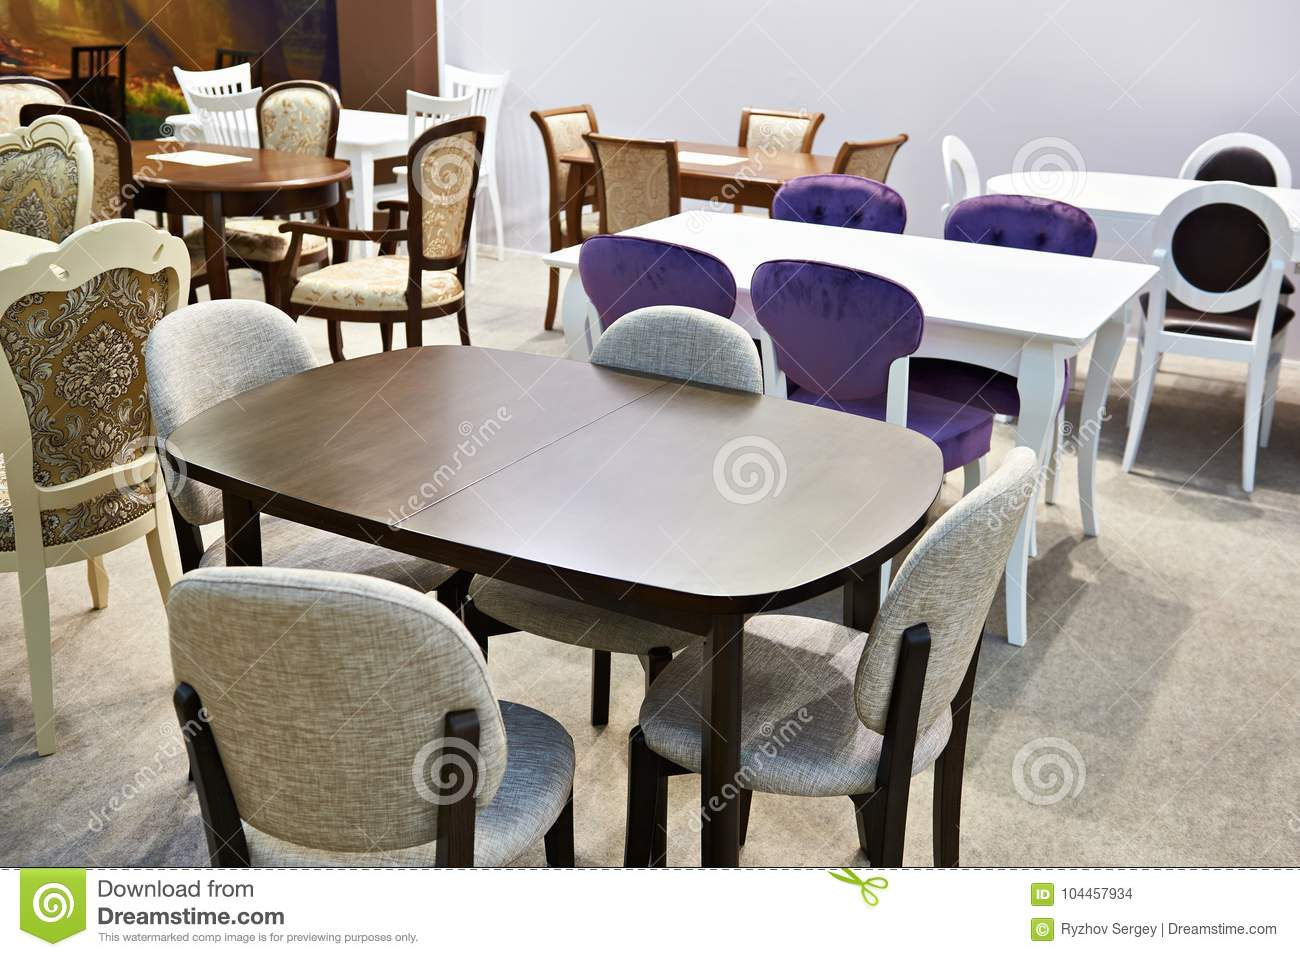 Tables And Chairs For Sale In Store Stock Photo Image Of Chair Wooden 104457934